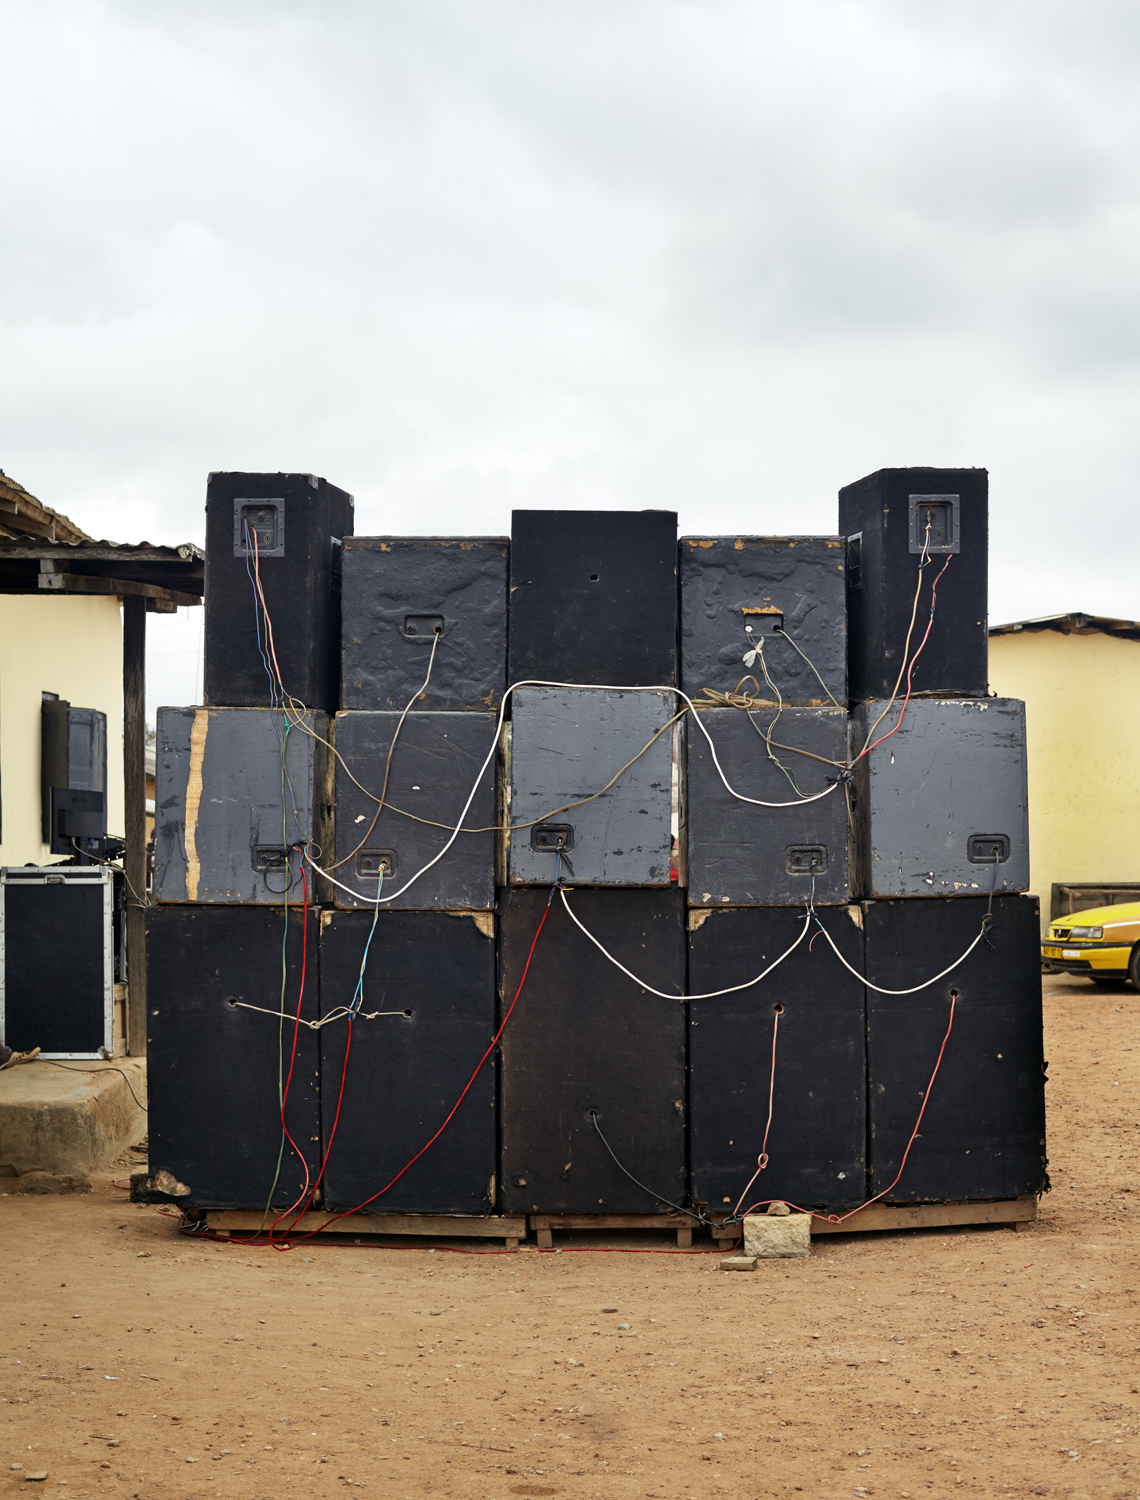 Funeral Sound System , Ghana 2014  Archival Pigment Print 16 x 20, Edition of 7 (1-3 available) $1500  Funerals are big celebrations in Ghana, typically costing as much, or more, than weddings. Colorful funeral announcements are plastered throughout towns. Friends and relatives, decked in black and red, arrive from miles around to dance and celebrate the life of the deceased.